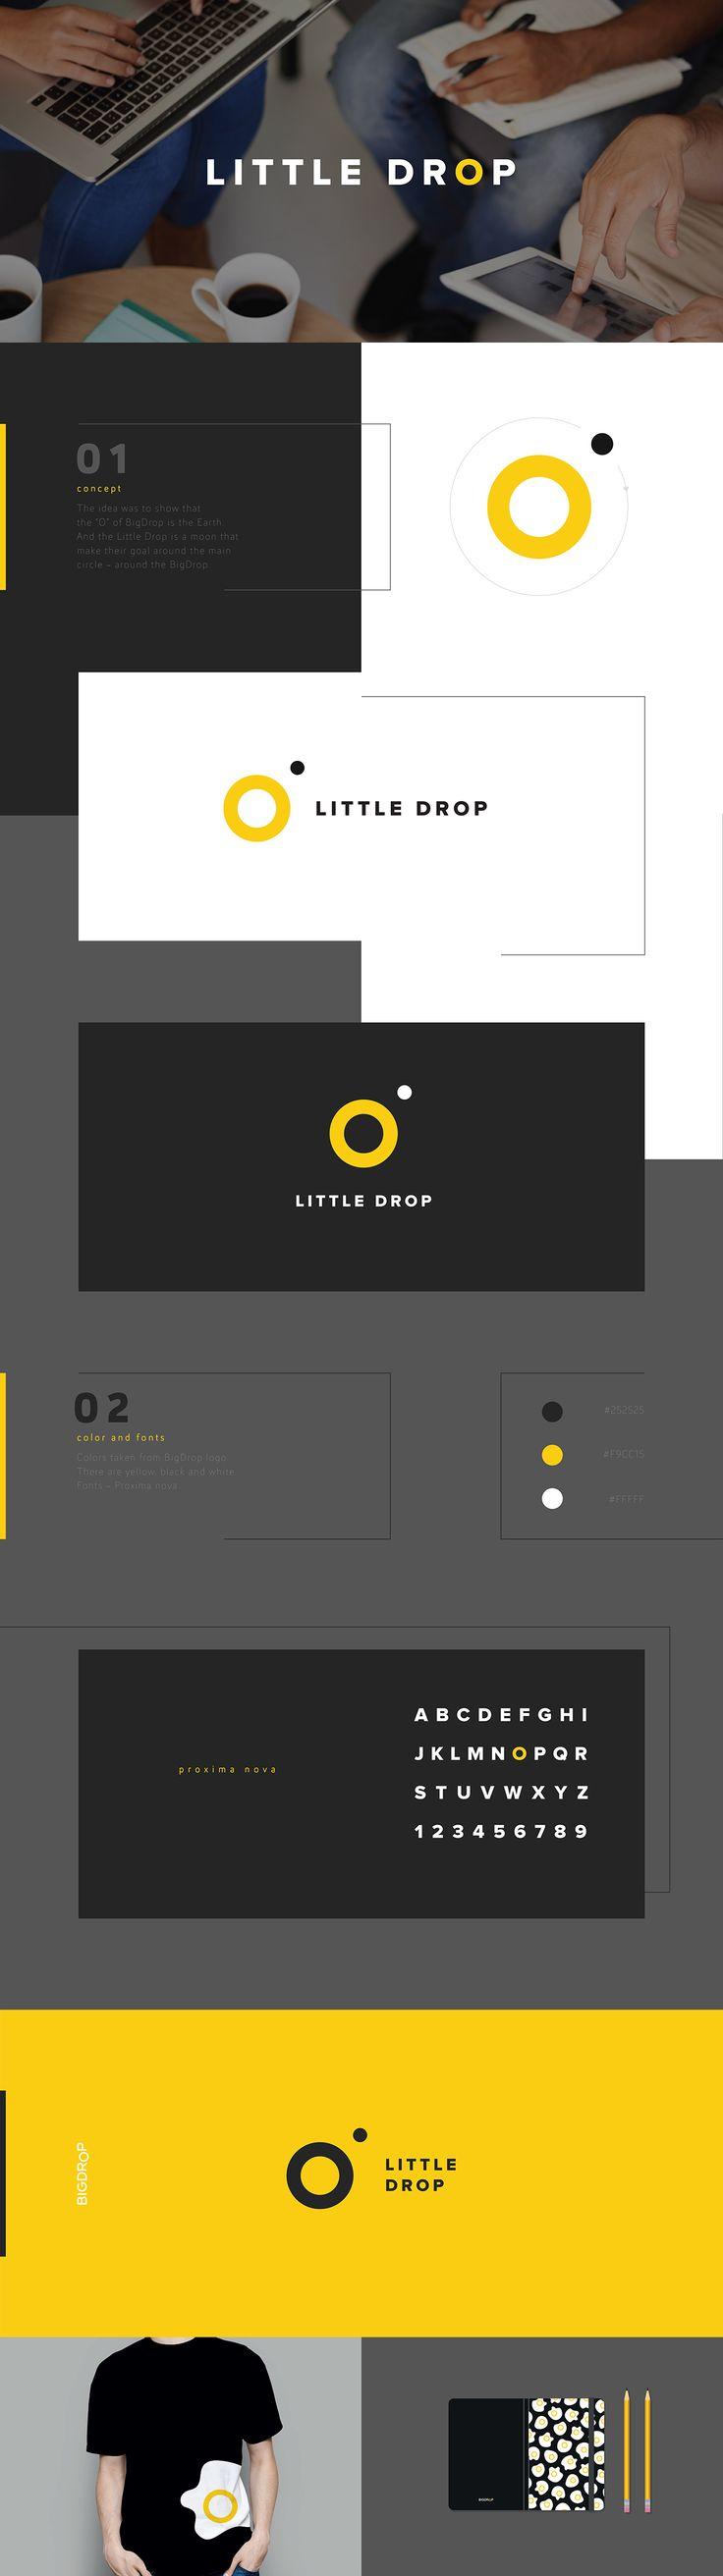 "The idea was to show that the ""O"" of BigDrop is the Earth. And the Little Drop is a moon that make their goal around the main circle - around the BigDrop. #logo #branding #corporate #identity #yellow #circle"